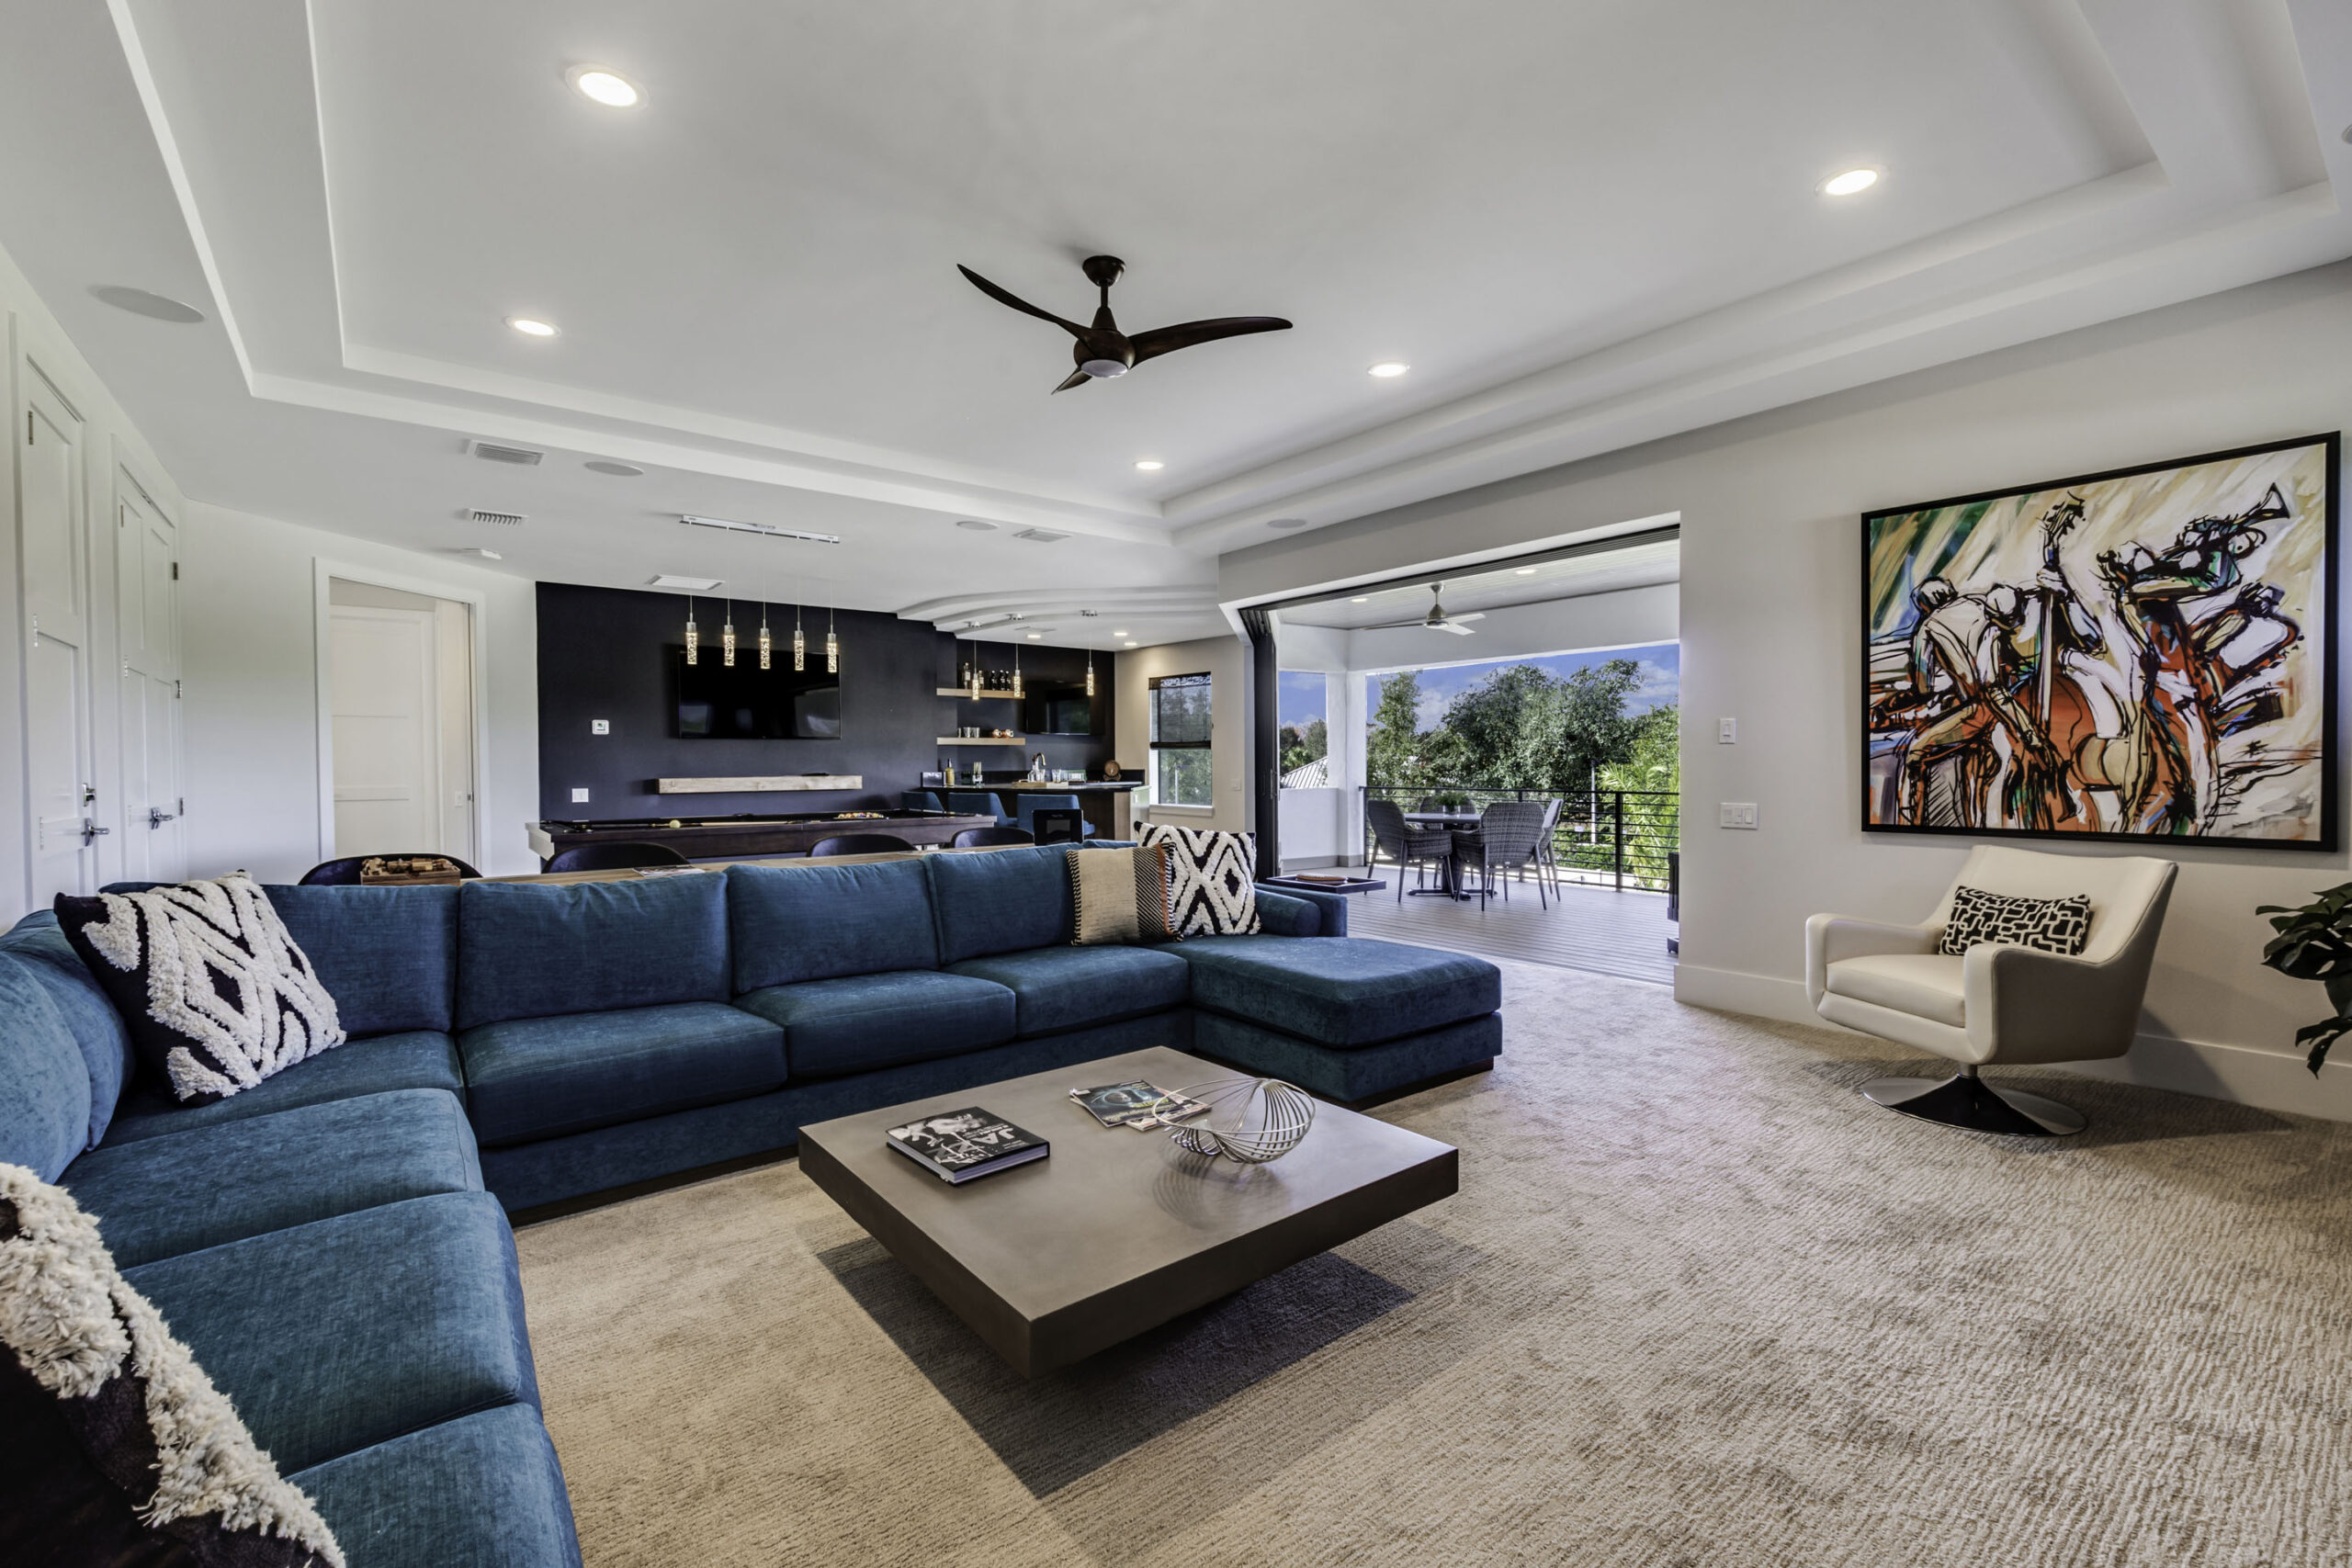 image of game room & bar of luxury home